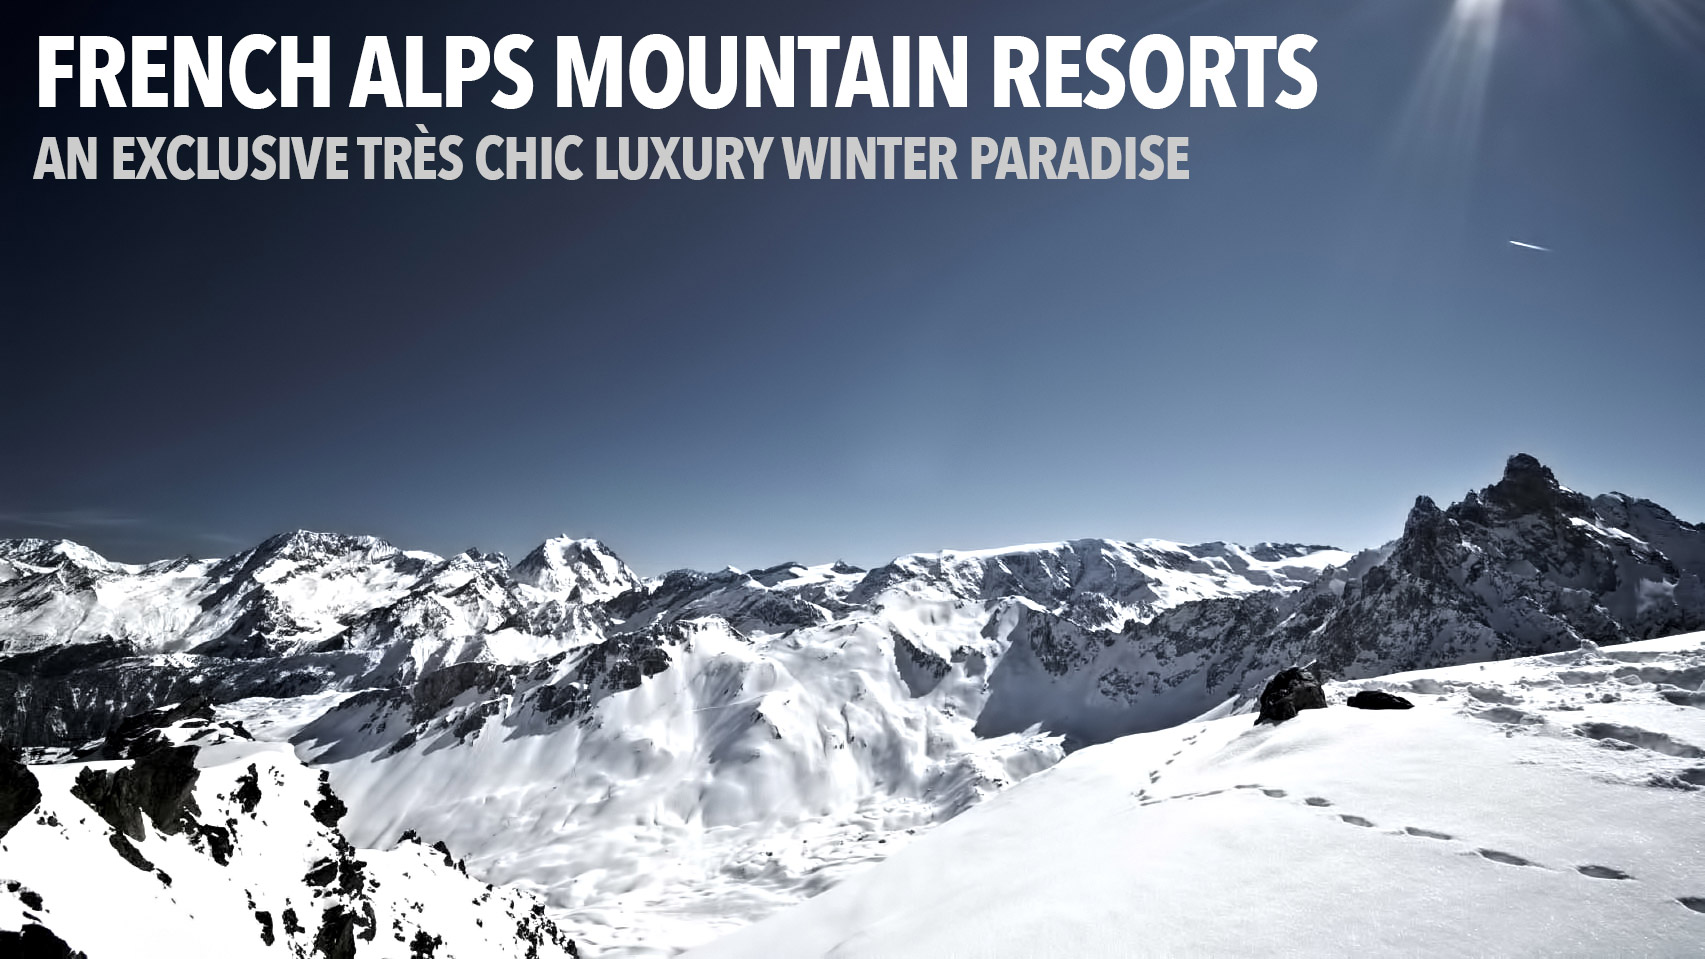 French Alps Mountain Resorts - An Exclusive Très Chic Luxury Winter Paradise